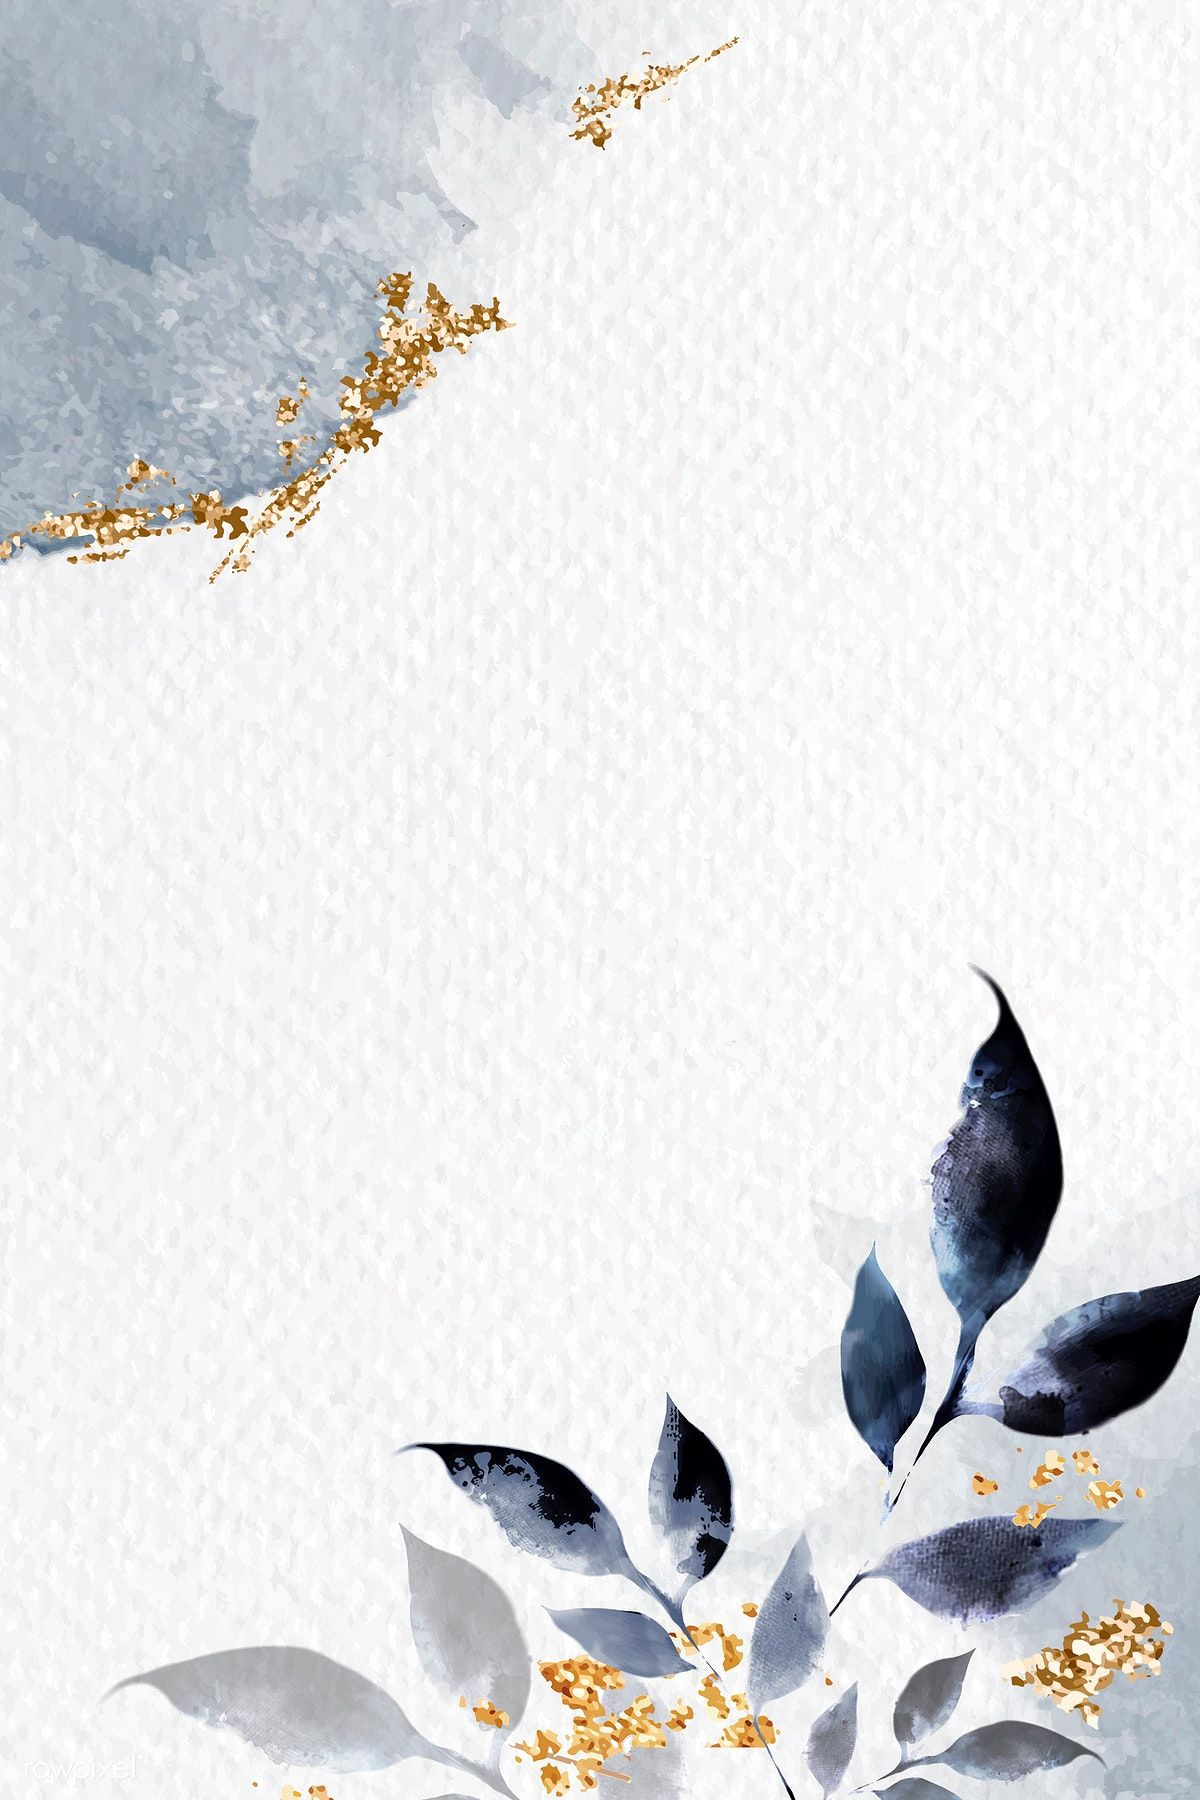 Shimmering watercolor leafy frame vector | premium image by rawpixel.com / Adj